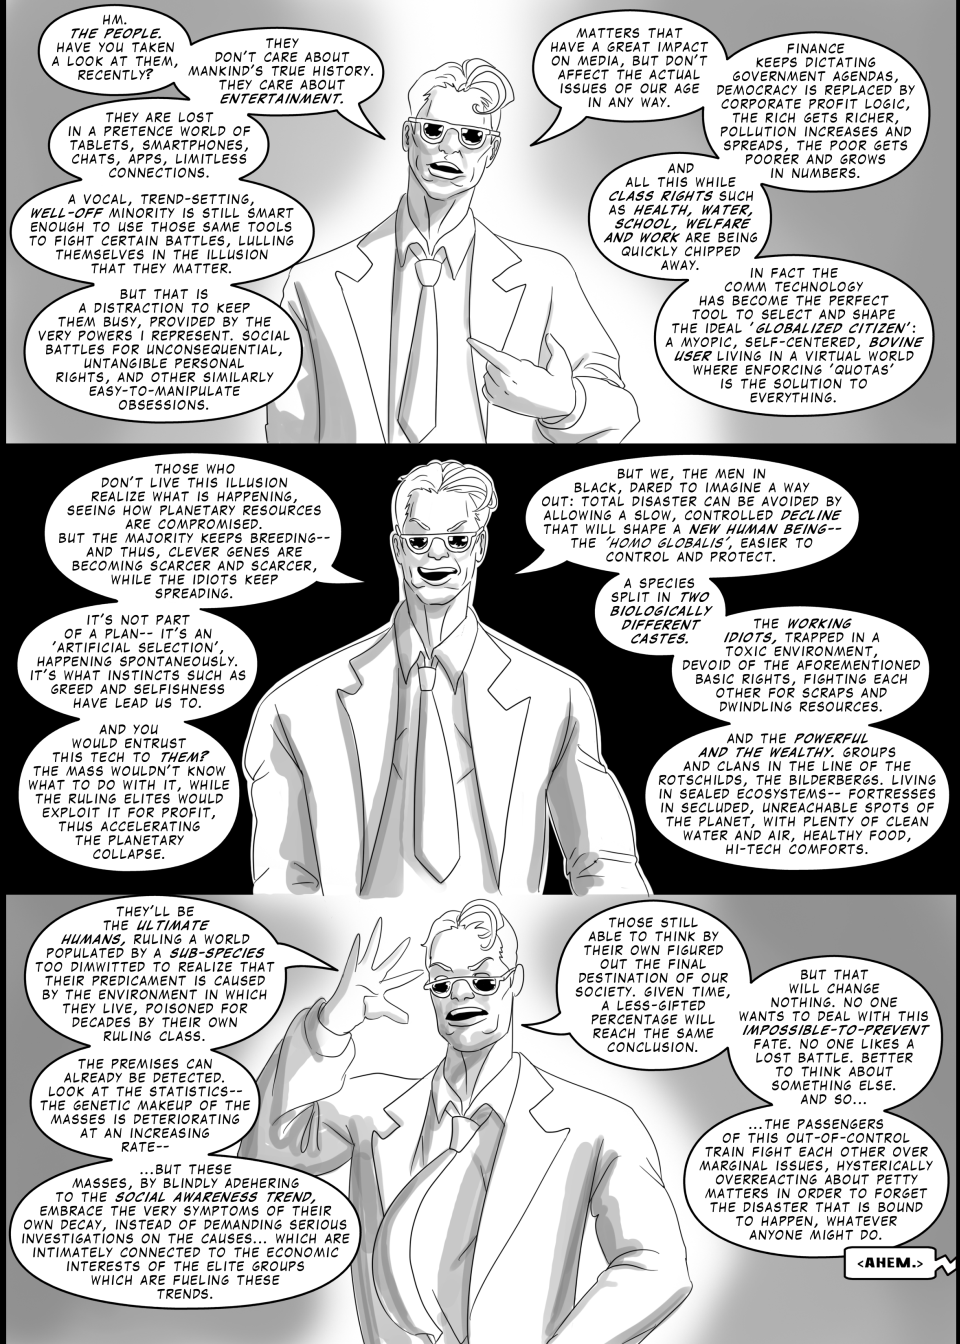 GAL 50 - The Pyramids' Other Secret 6 - p13